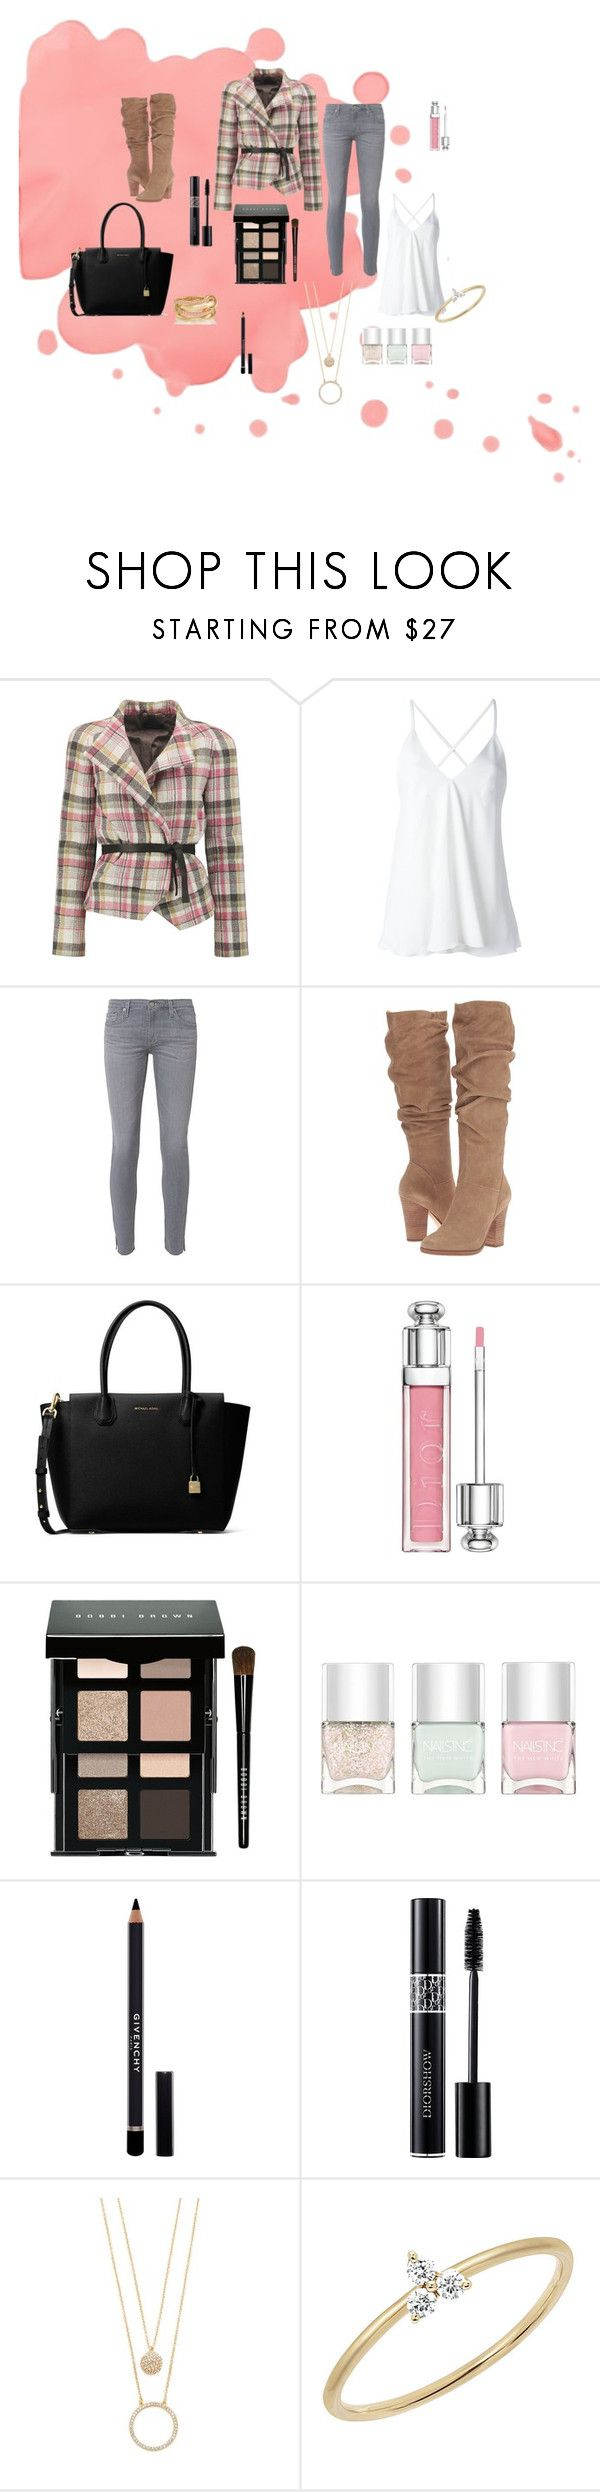 """""""Fancy Casual"""" by designed-by-me ❤ liked on Polyvore featuring Isabel Marant, Dondup, AG Adriano Goldschmied, Steve Madden, MICHAEL Michael Kors, Christian Dior, Bobbi Brown Cosmetics, Nails Inc., Givenchy and Kate Spade"""